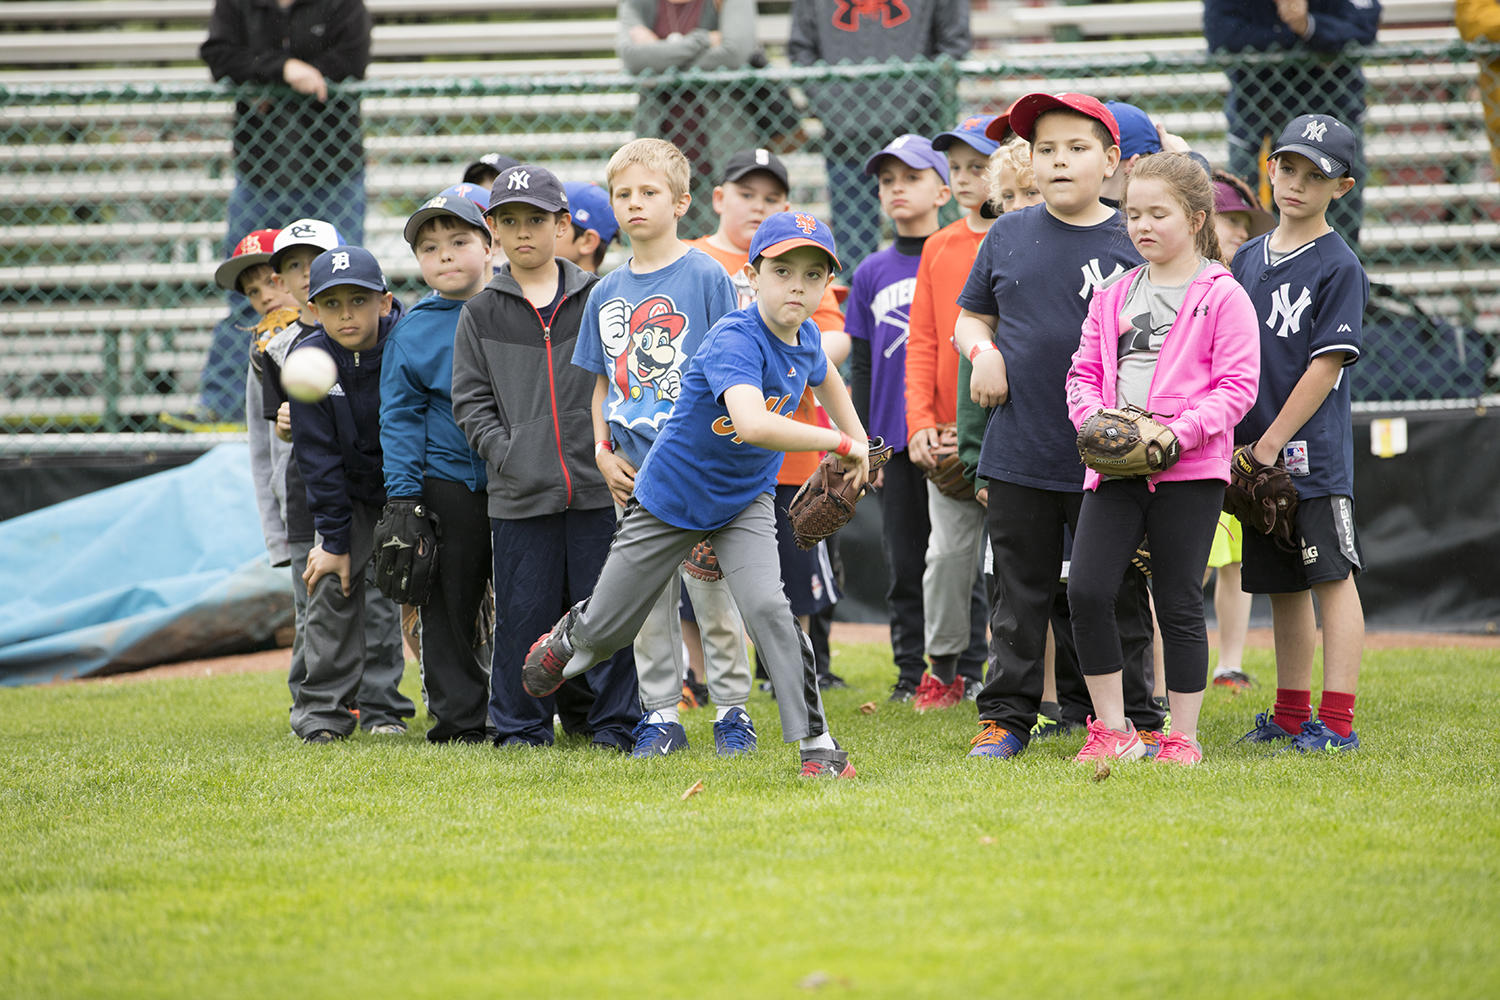 Young fans go through a throwing drill during the 2017 Cooperstown Classic Clinic. (Milo Stewart Jr./National Baseball Hall of Fame and Museum)